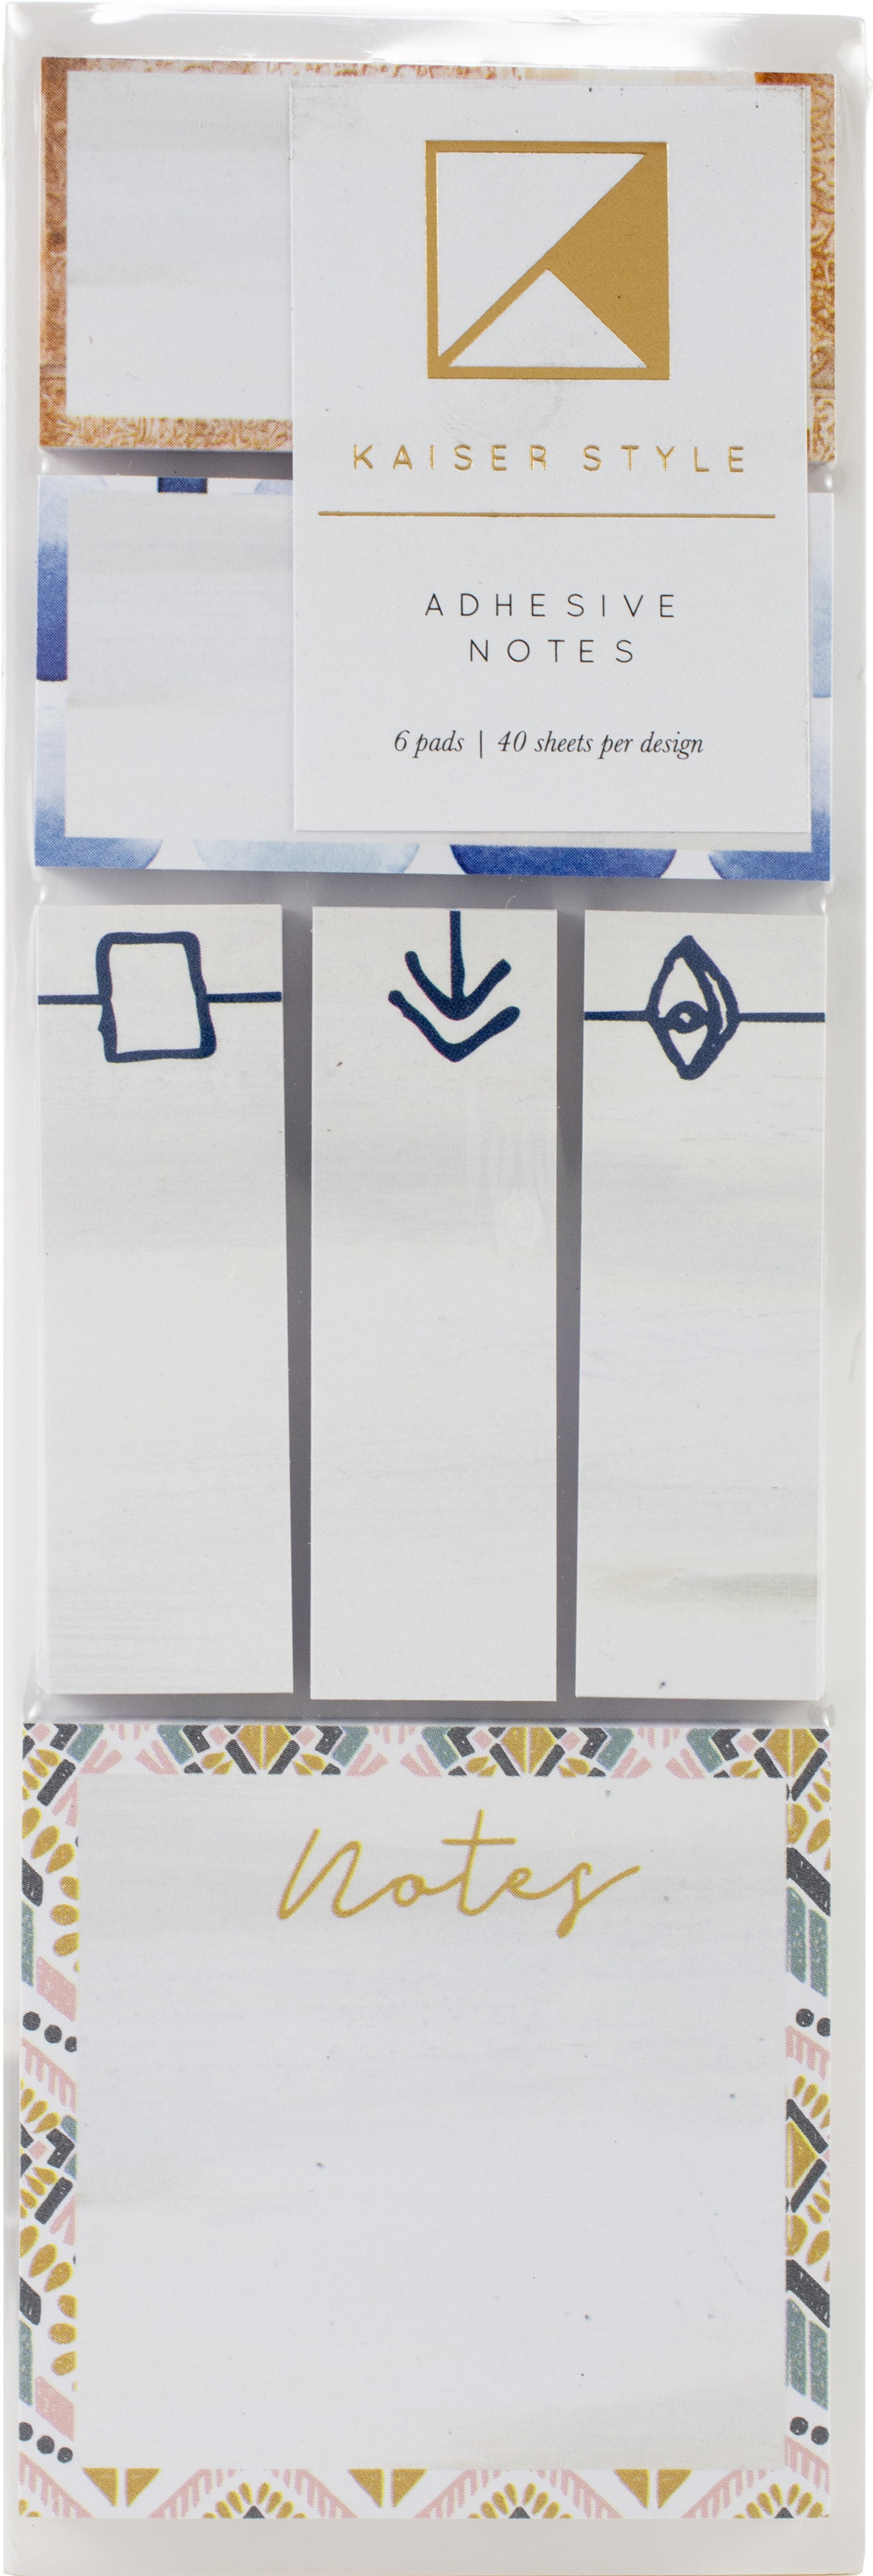 Kaiser Style Adhesive Note Pads 6/Pkg-Wanderlust; Assorted Sizes & Designs